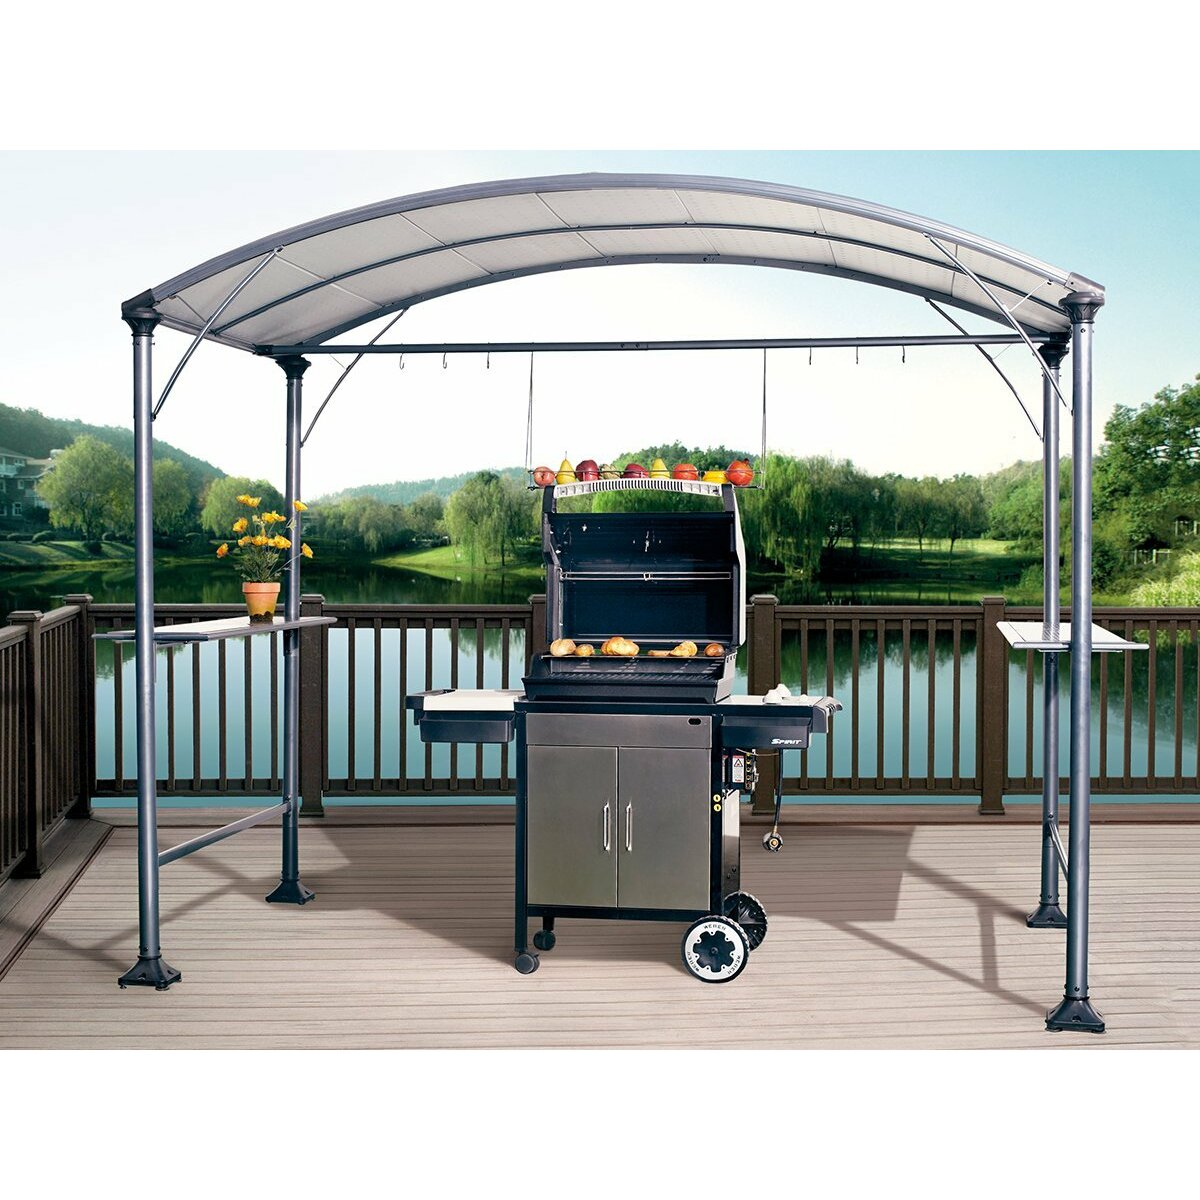 9 X 5 Outdoor Backyard BBQ Grill Gazebo Wayfair